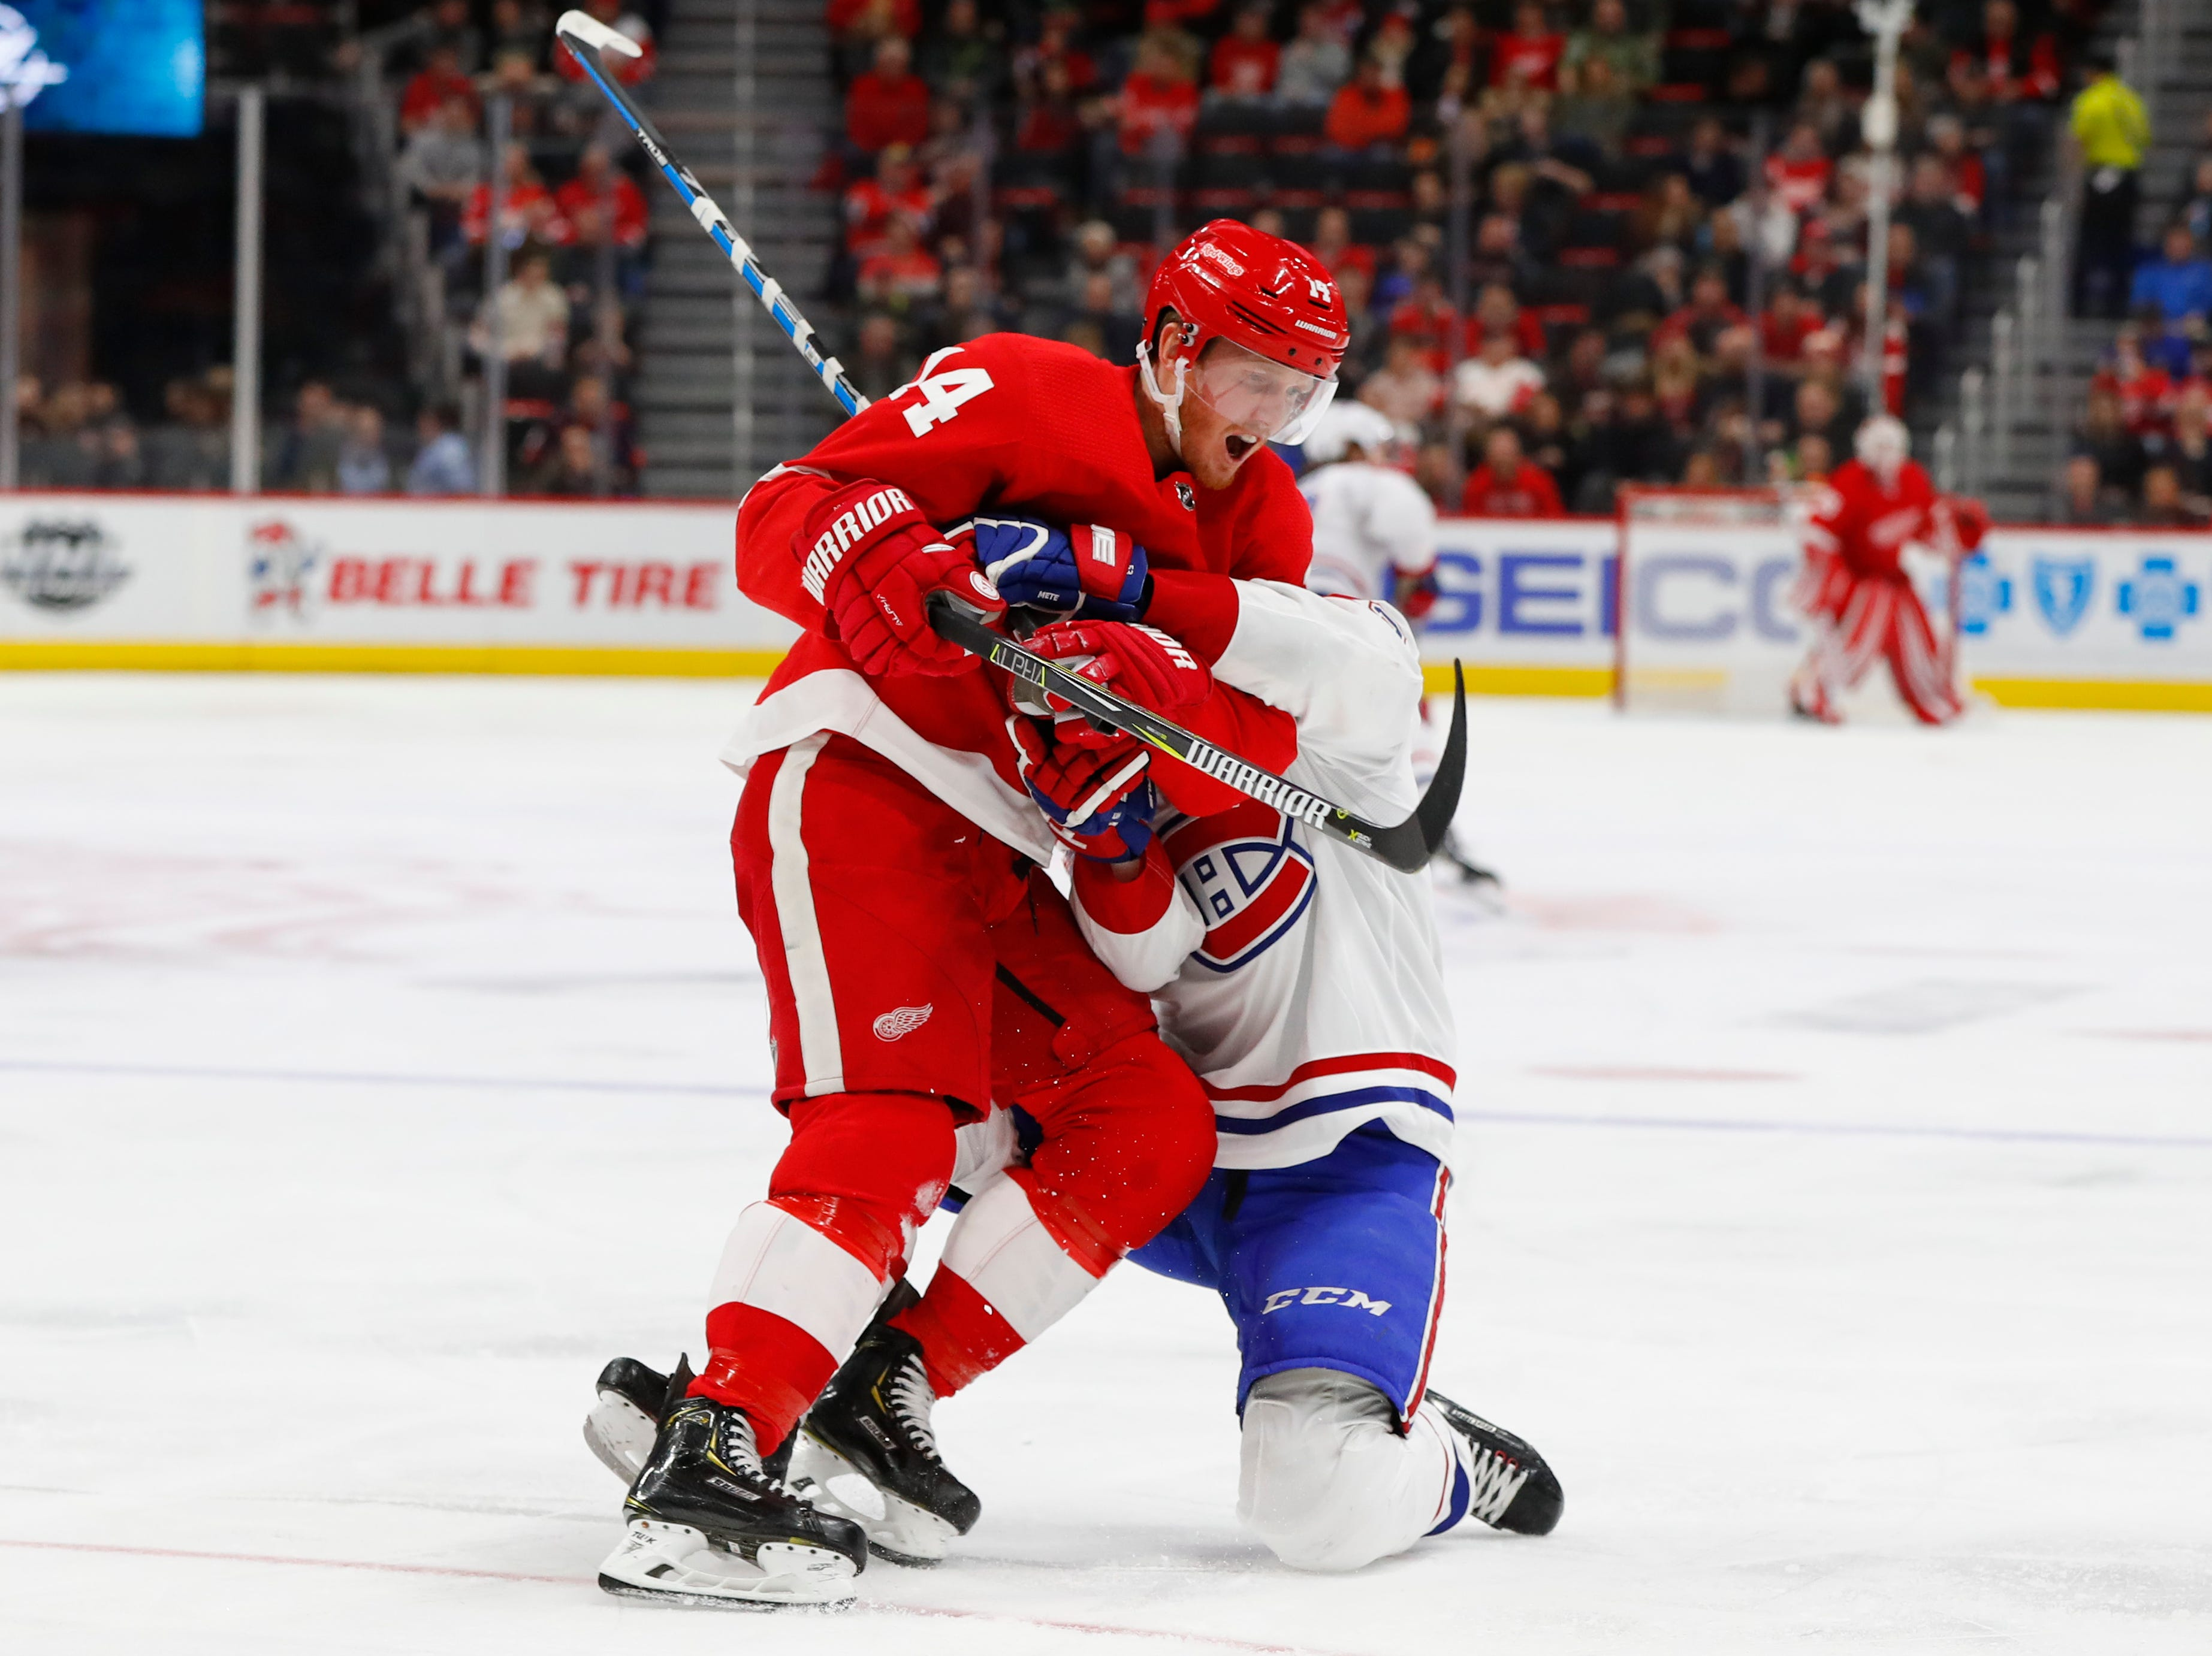 Montreal Canadiens defenseman Victor Mete (53) wraps Detroit Red Wings right wing Gustav Nyquist (14) up in the second period.